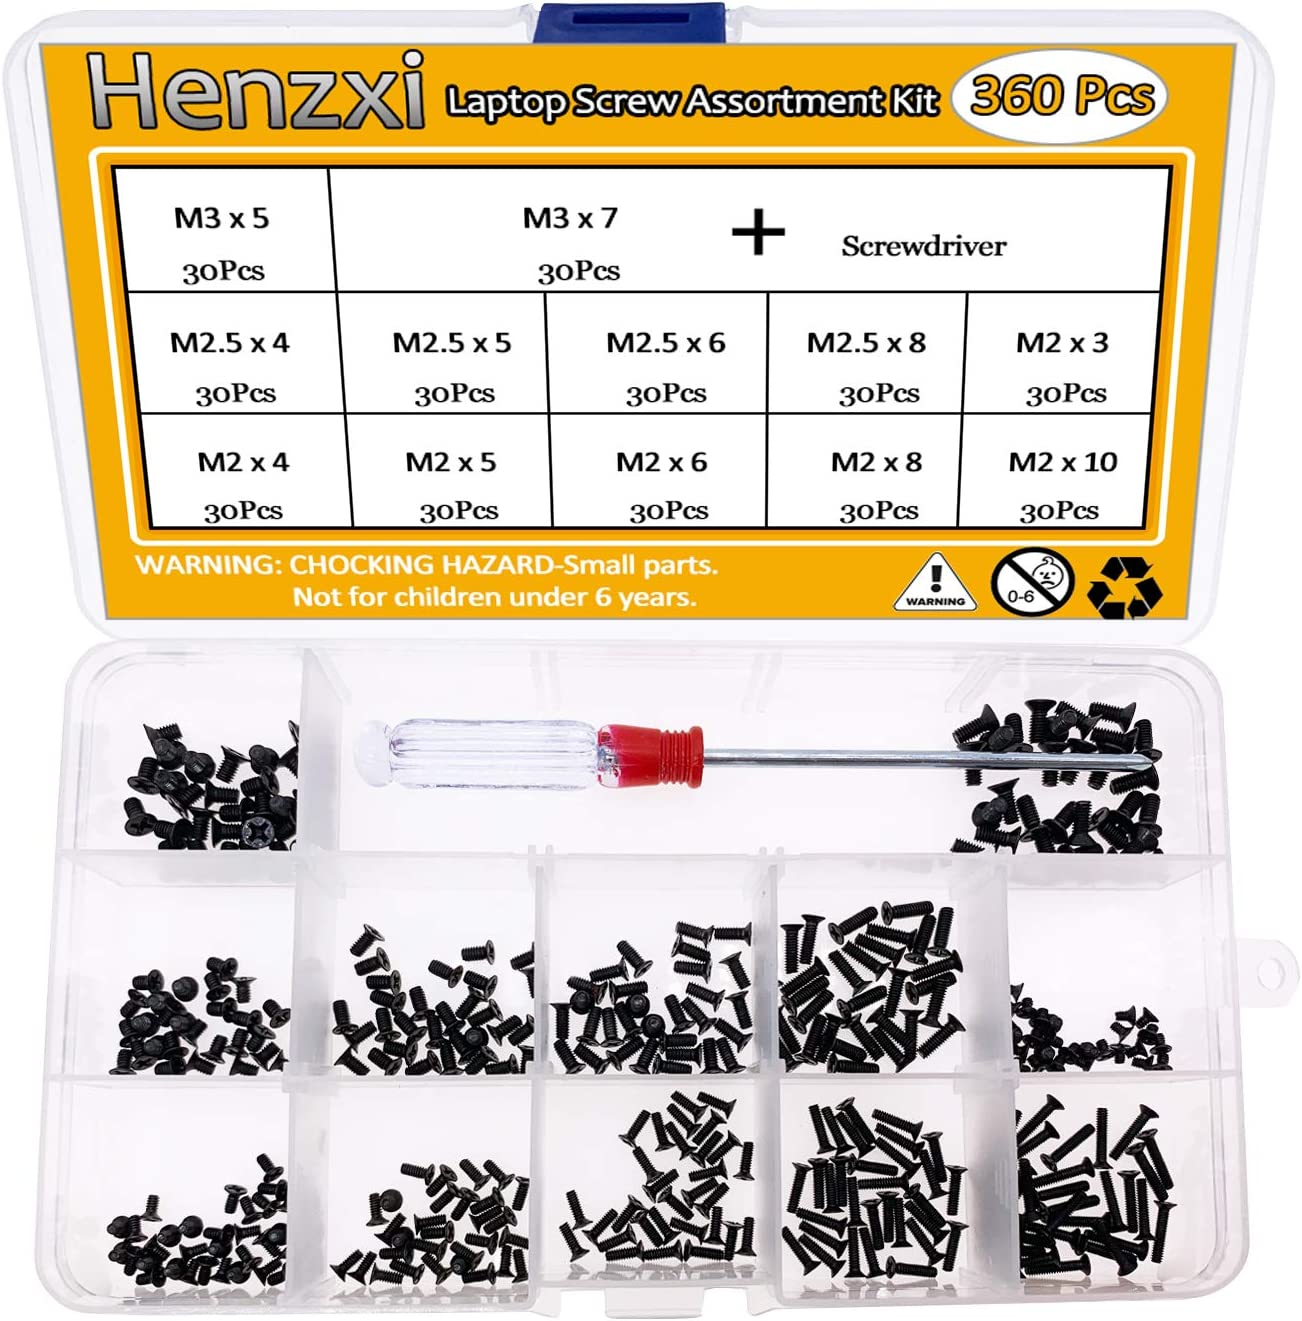 Henzxi 360pcs Laptop Notebook Computer Screw Kit for IBM HP Dell Lenovo Samsung Sony Toshiba Gateway Acer etc (Screwdriver Includes)